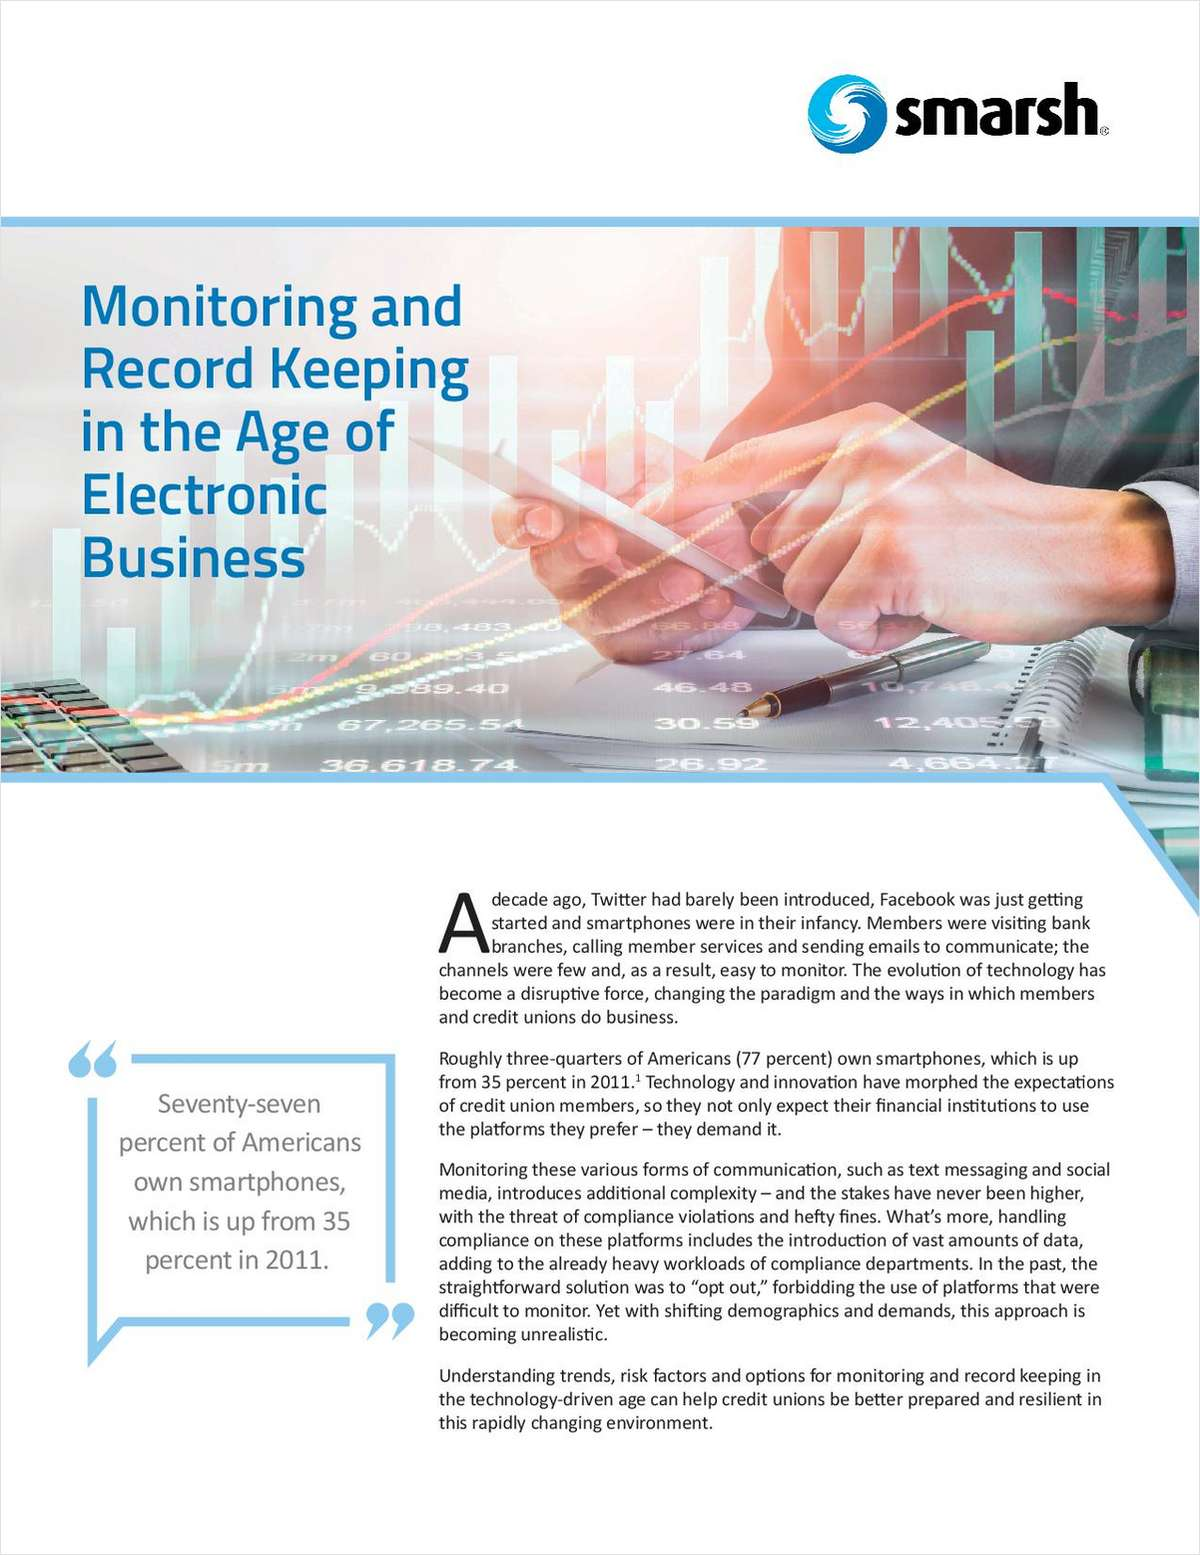 Monitoring and Record Keeping for Credit Unions in the Age of Electronic Business